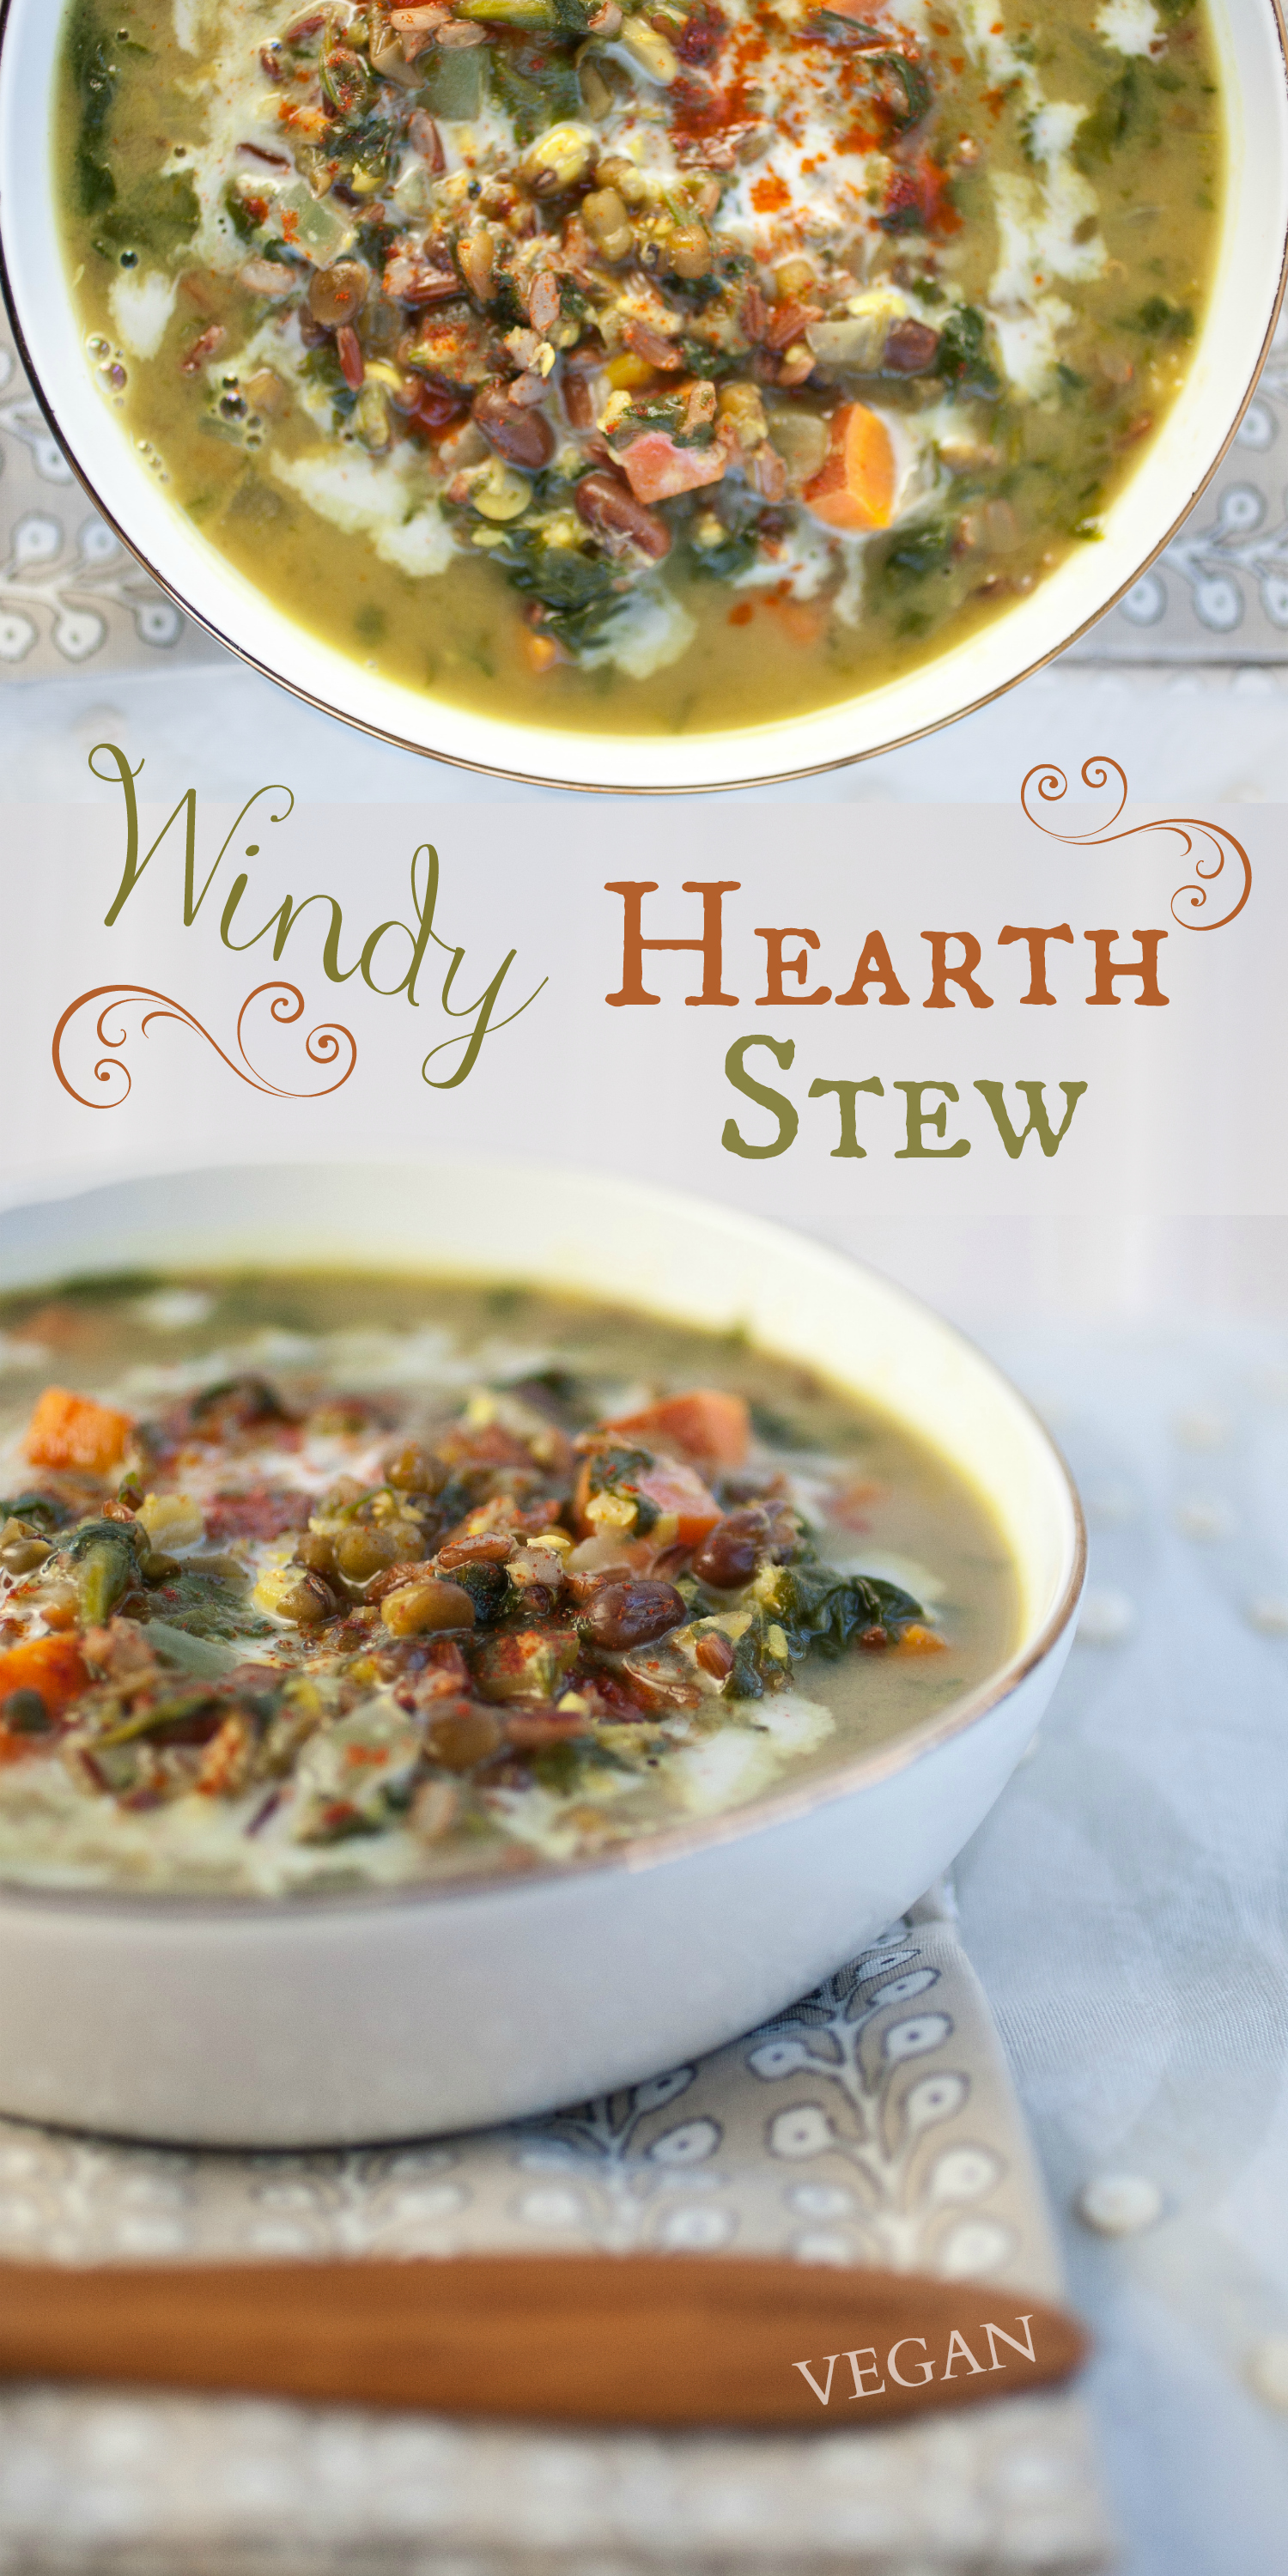 Produce On Parade - Windy Hearth Stew